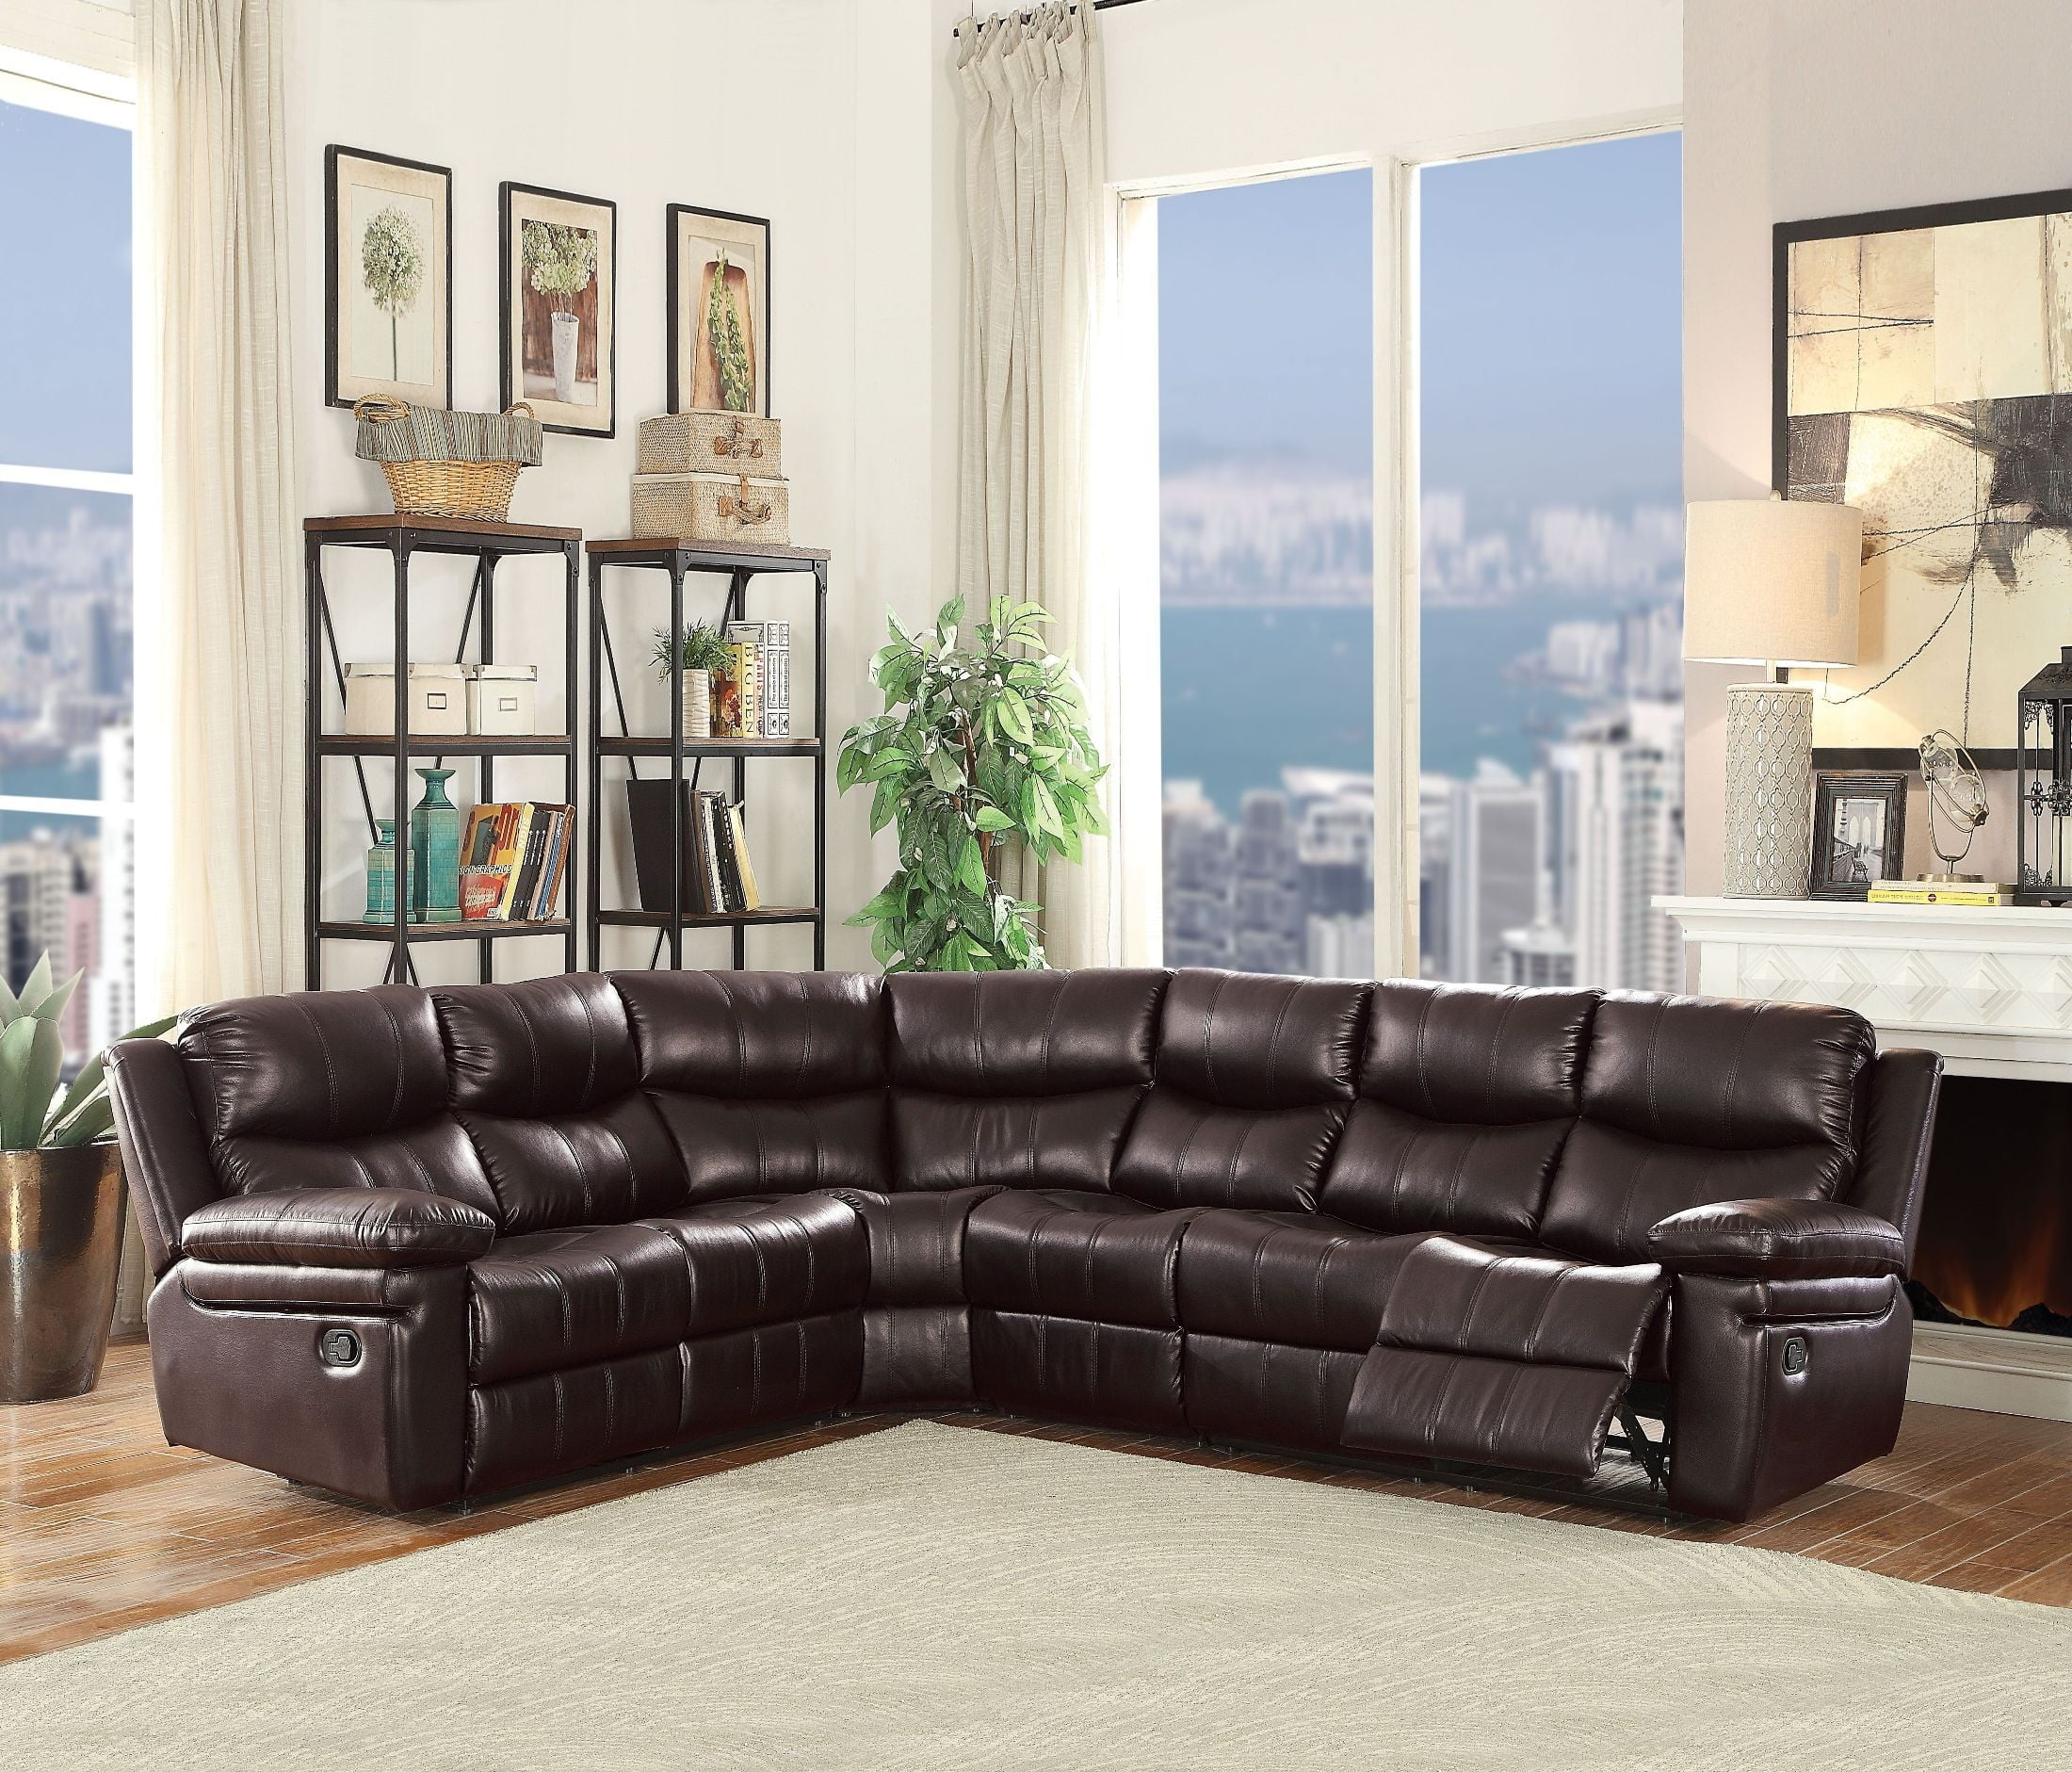 search recliner jsp leather sectionals wayne reclining willey living sofa piece sectional rc room furniture rcwilley black